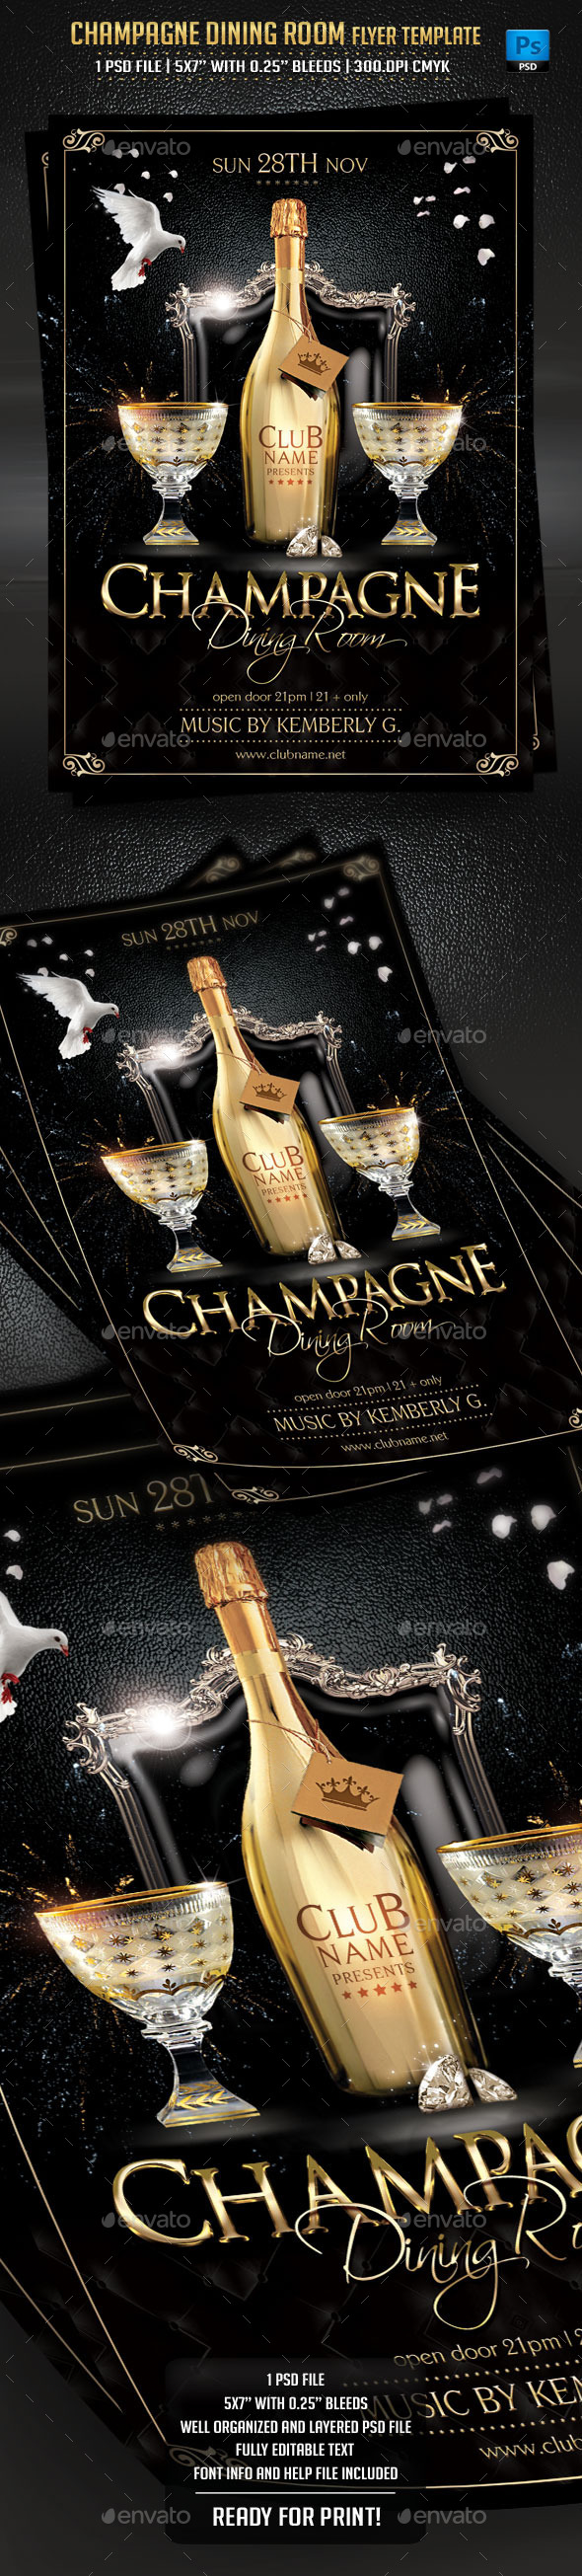 GraphicRiver Champagne Dining Room Flyer Template 9013759